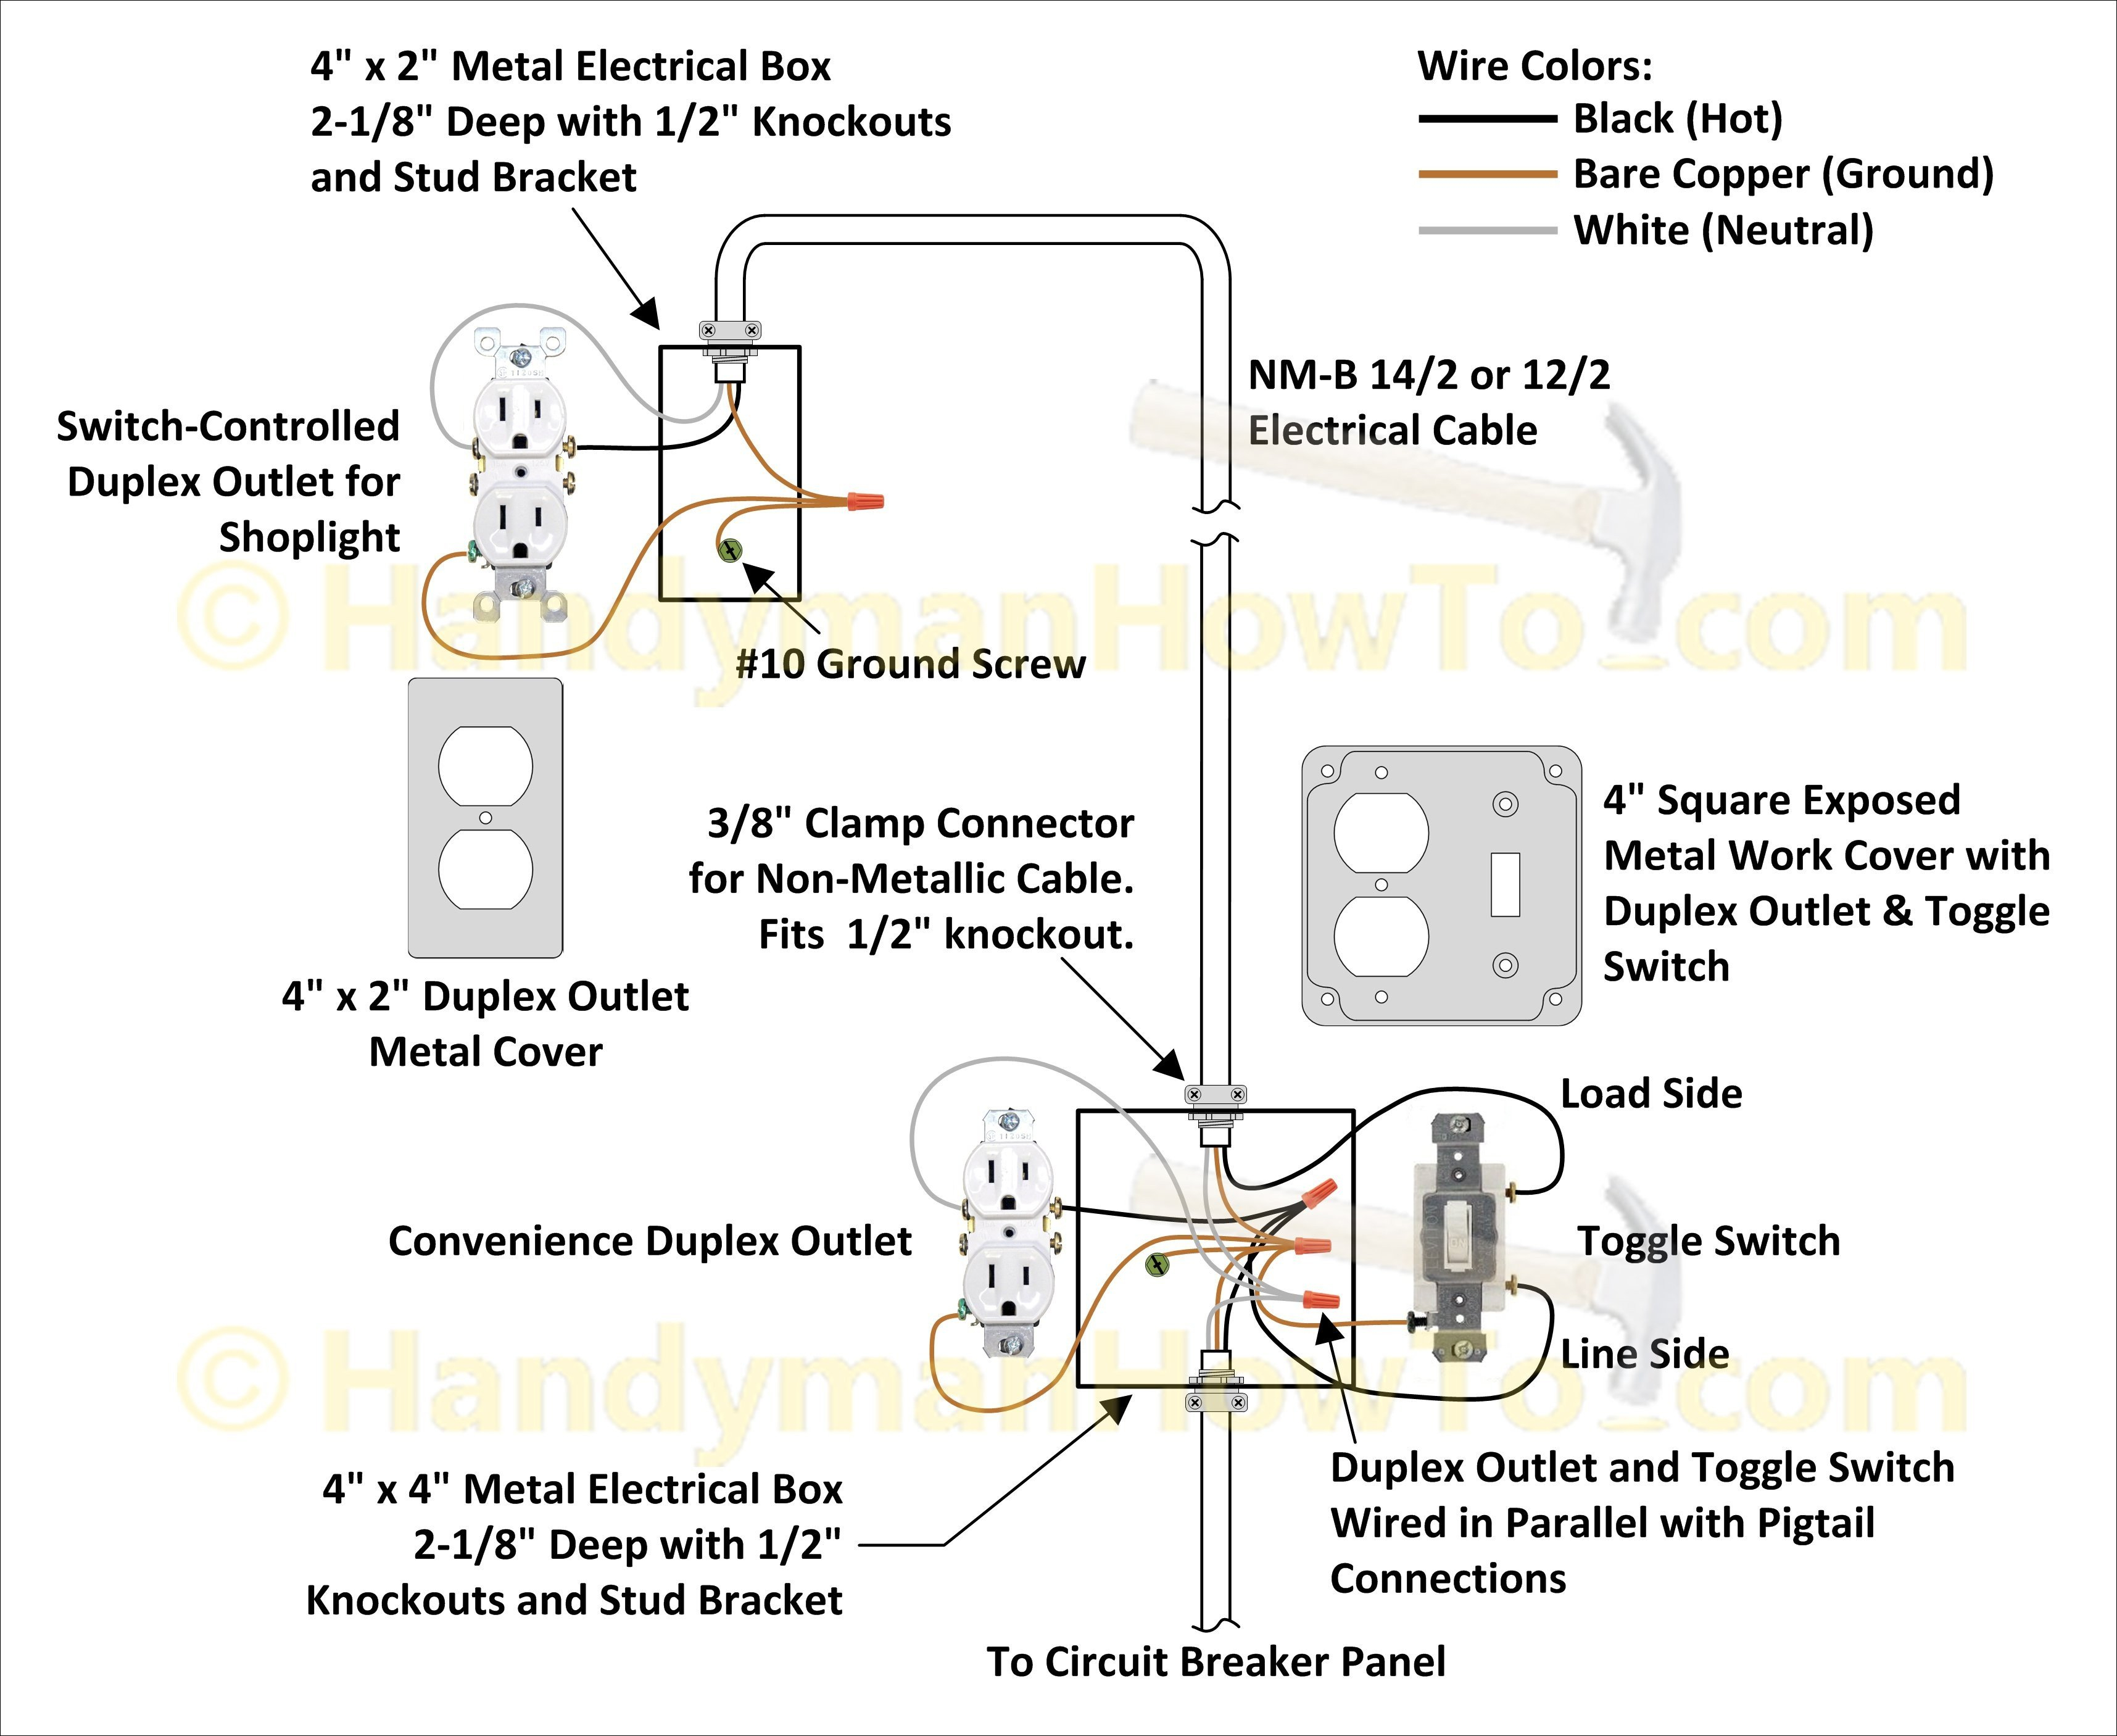 Wiring Diagram For 2 Sd Whole House Fan | Manual E-Books - 2 Speed Whole House Fan Switch Wiring Diagram